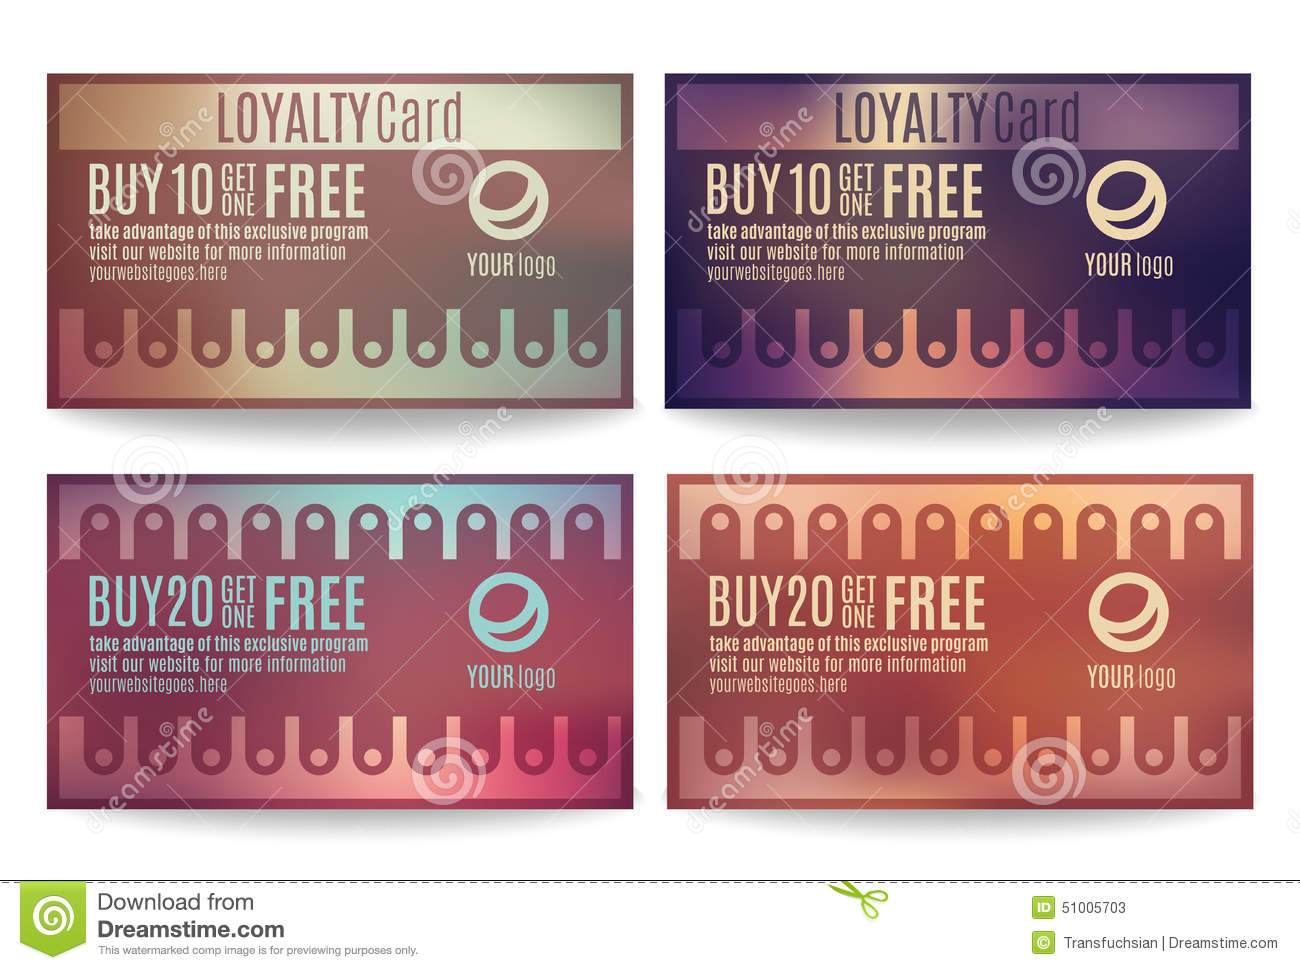 Customer Loyalty Card Templates Stock Vector - Image: 51005703